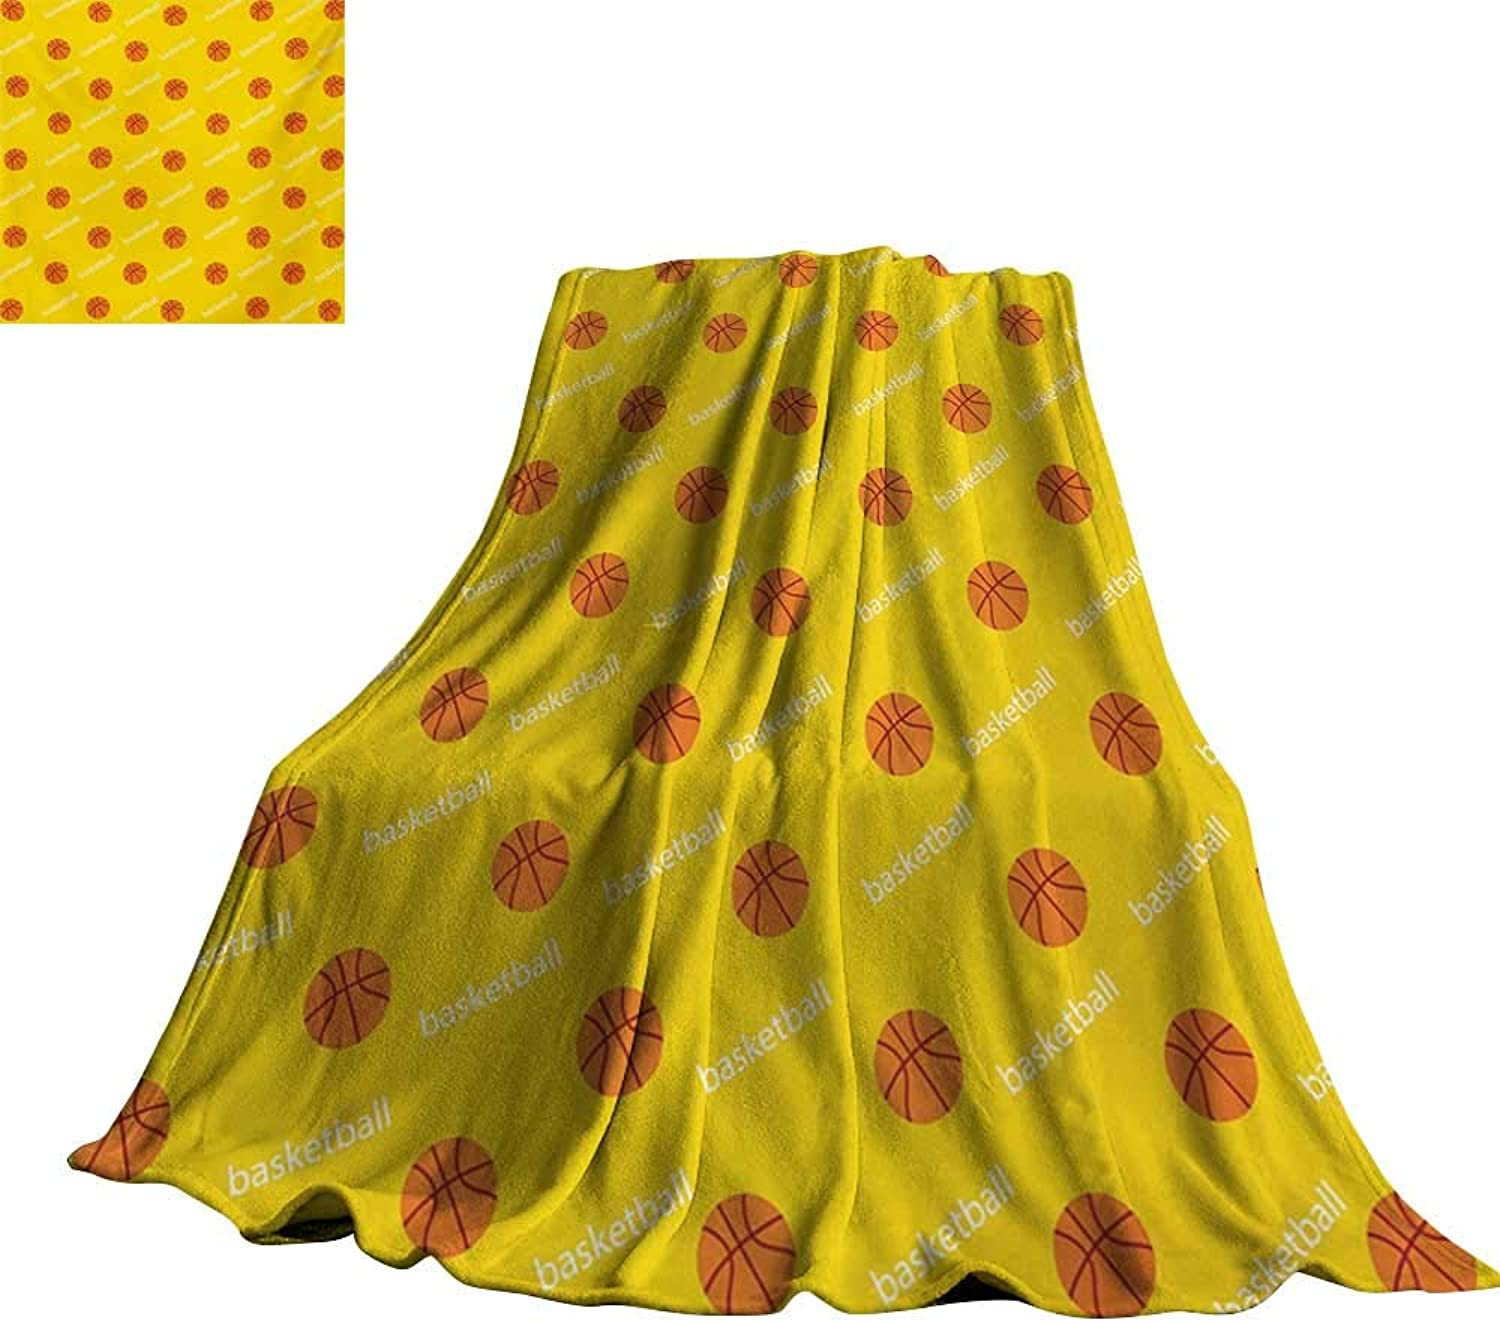 RenteriaDecor Basketball,Throw Blankets Athletics League Theme Balls on Yellow Backdrop Goal Fun Game Match for Couch Bed Living Room 60 x50